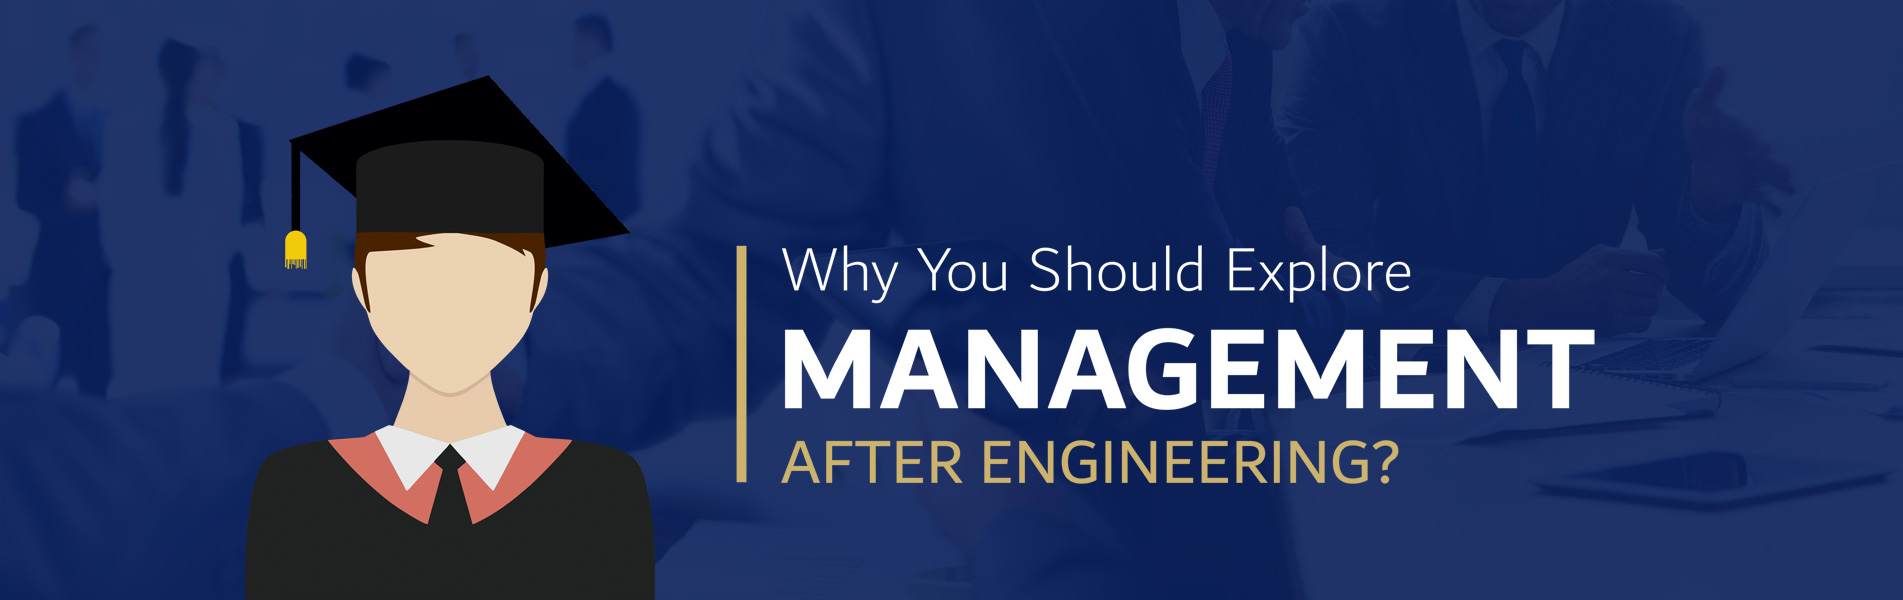 management-after-engineering